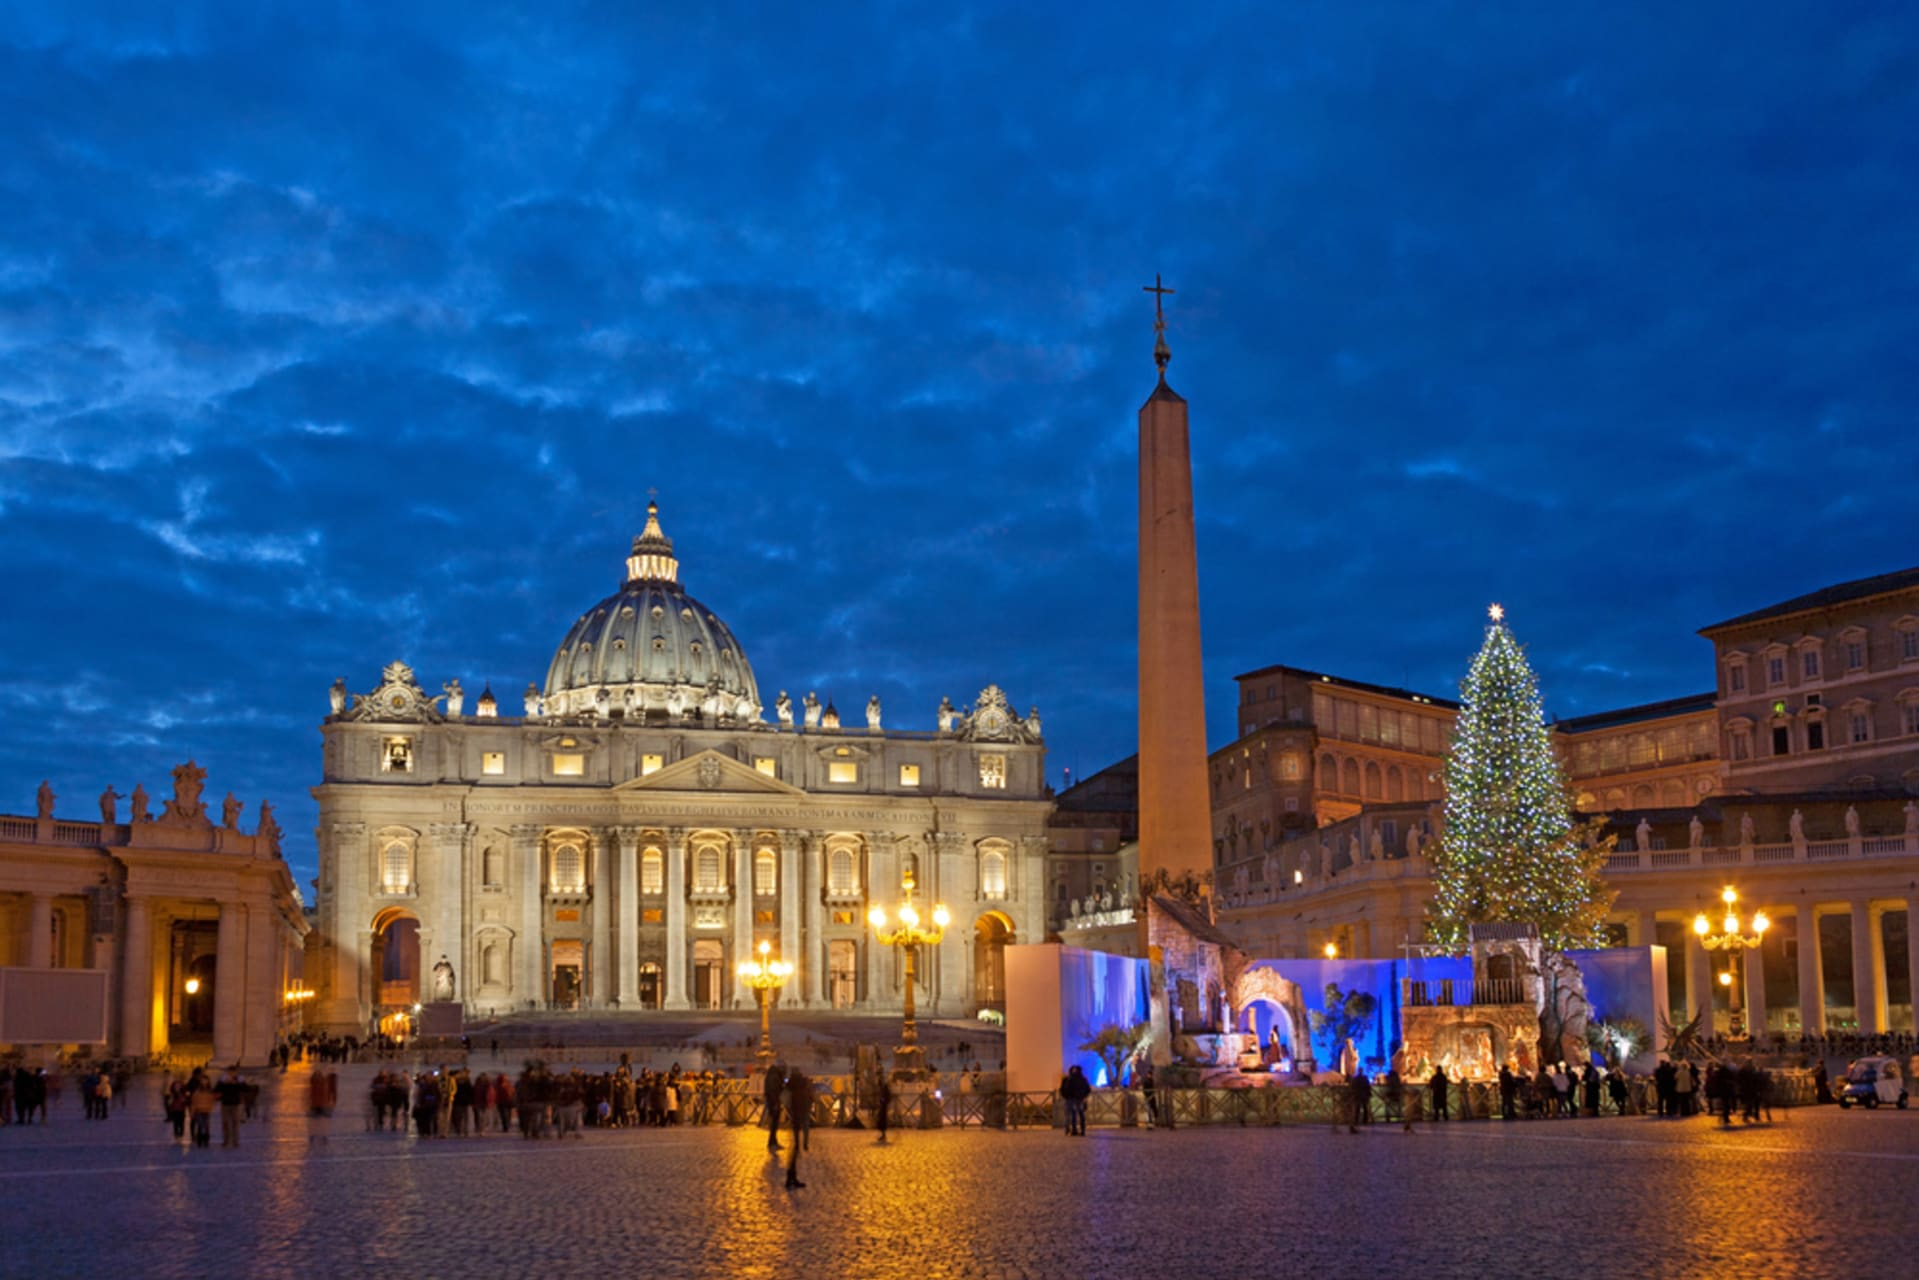 Rome - Holiday Special - Saint Peter's Square